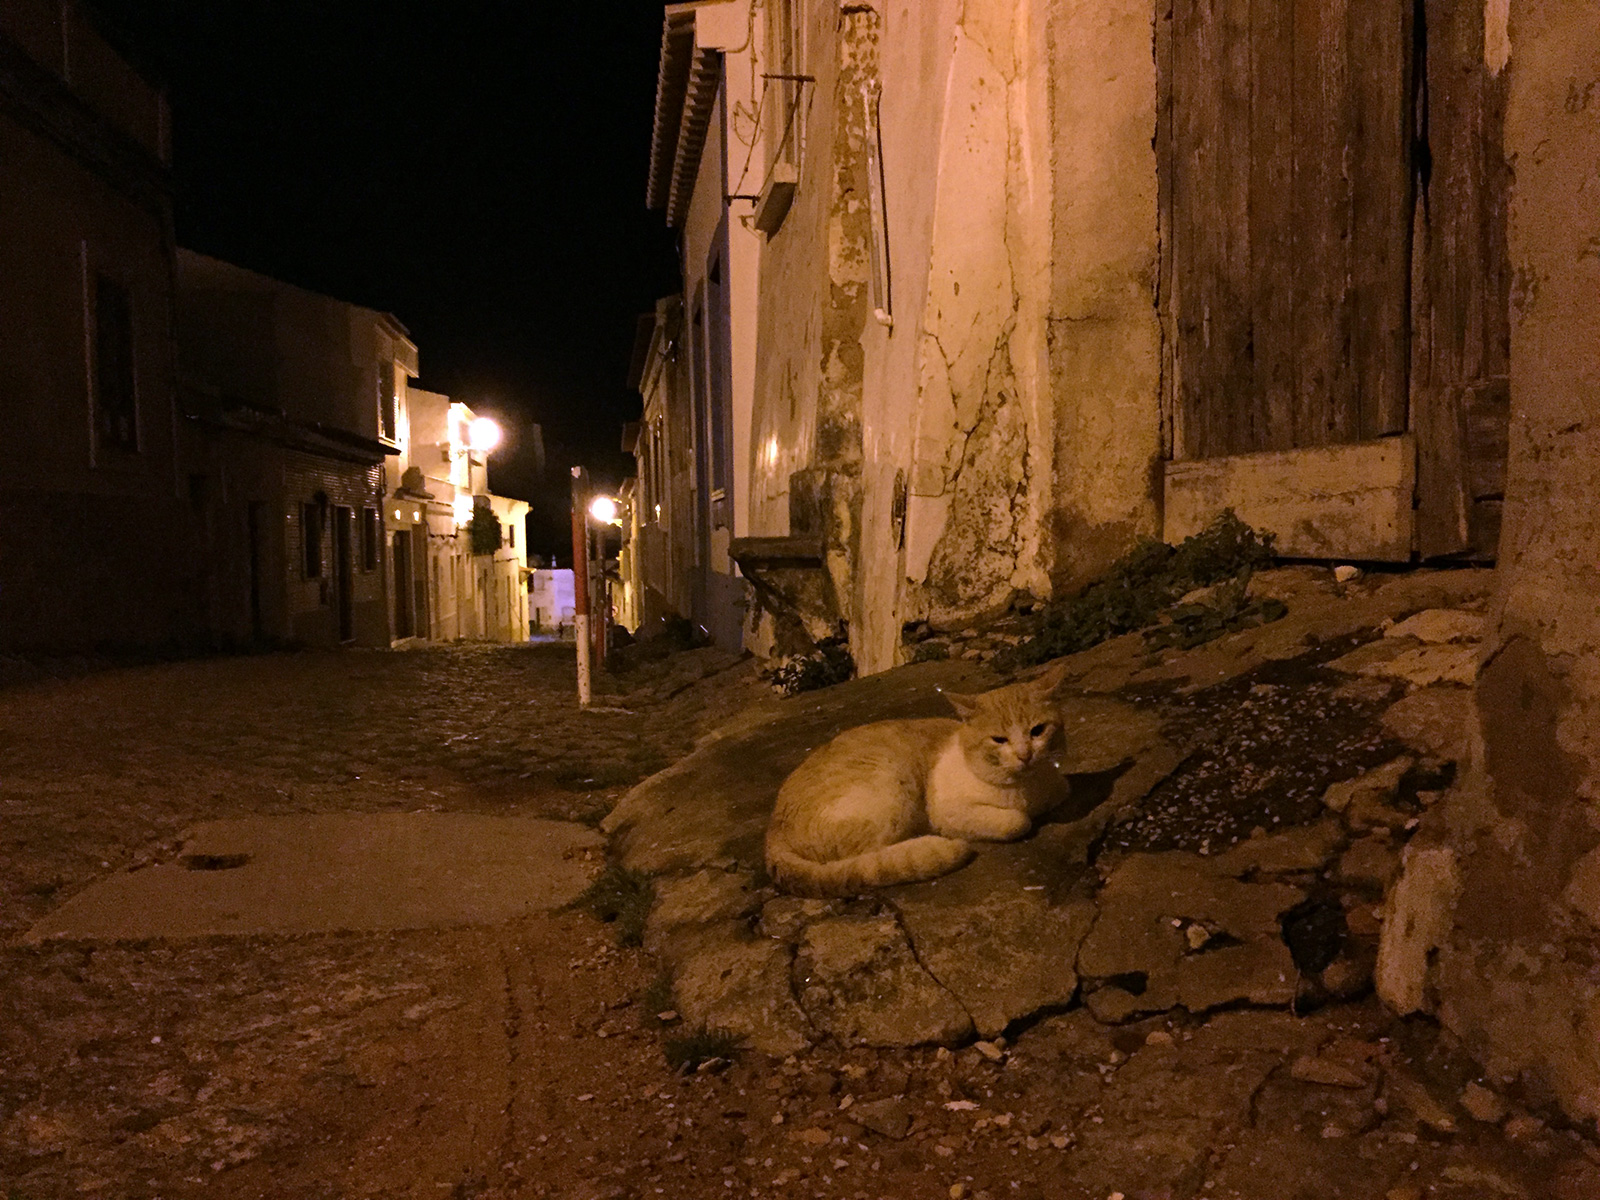 Cats in Lagos, Portugal by Jets Like Taxis